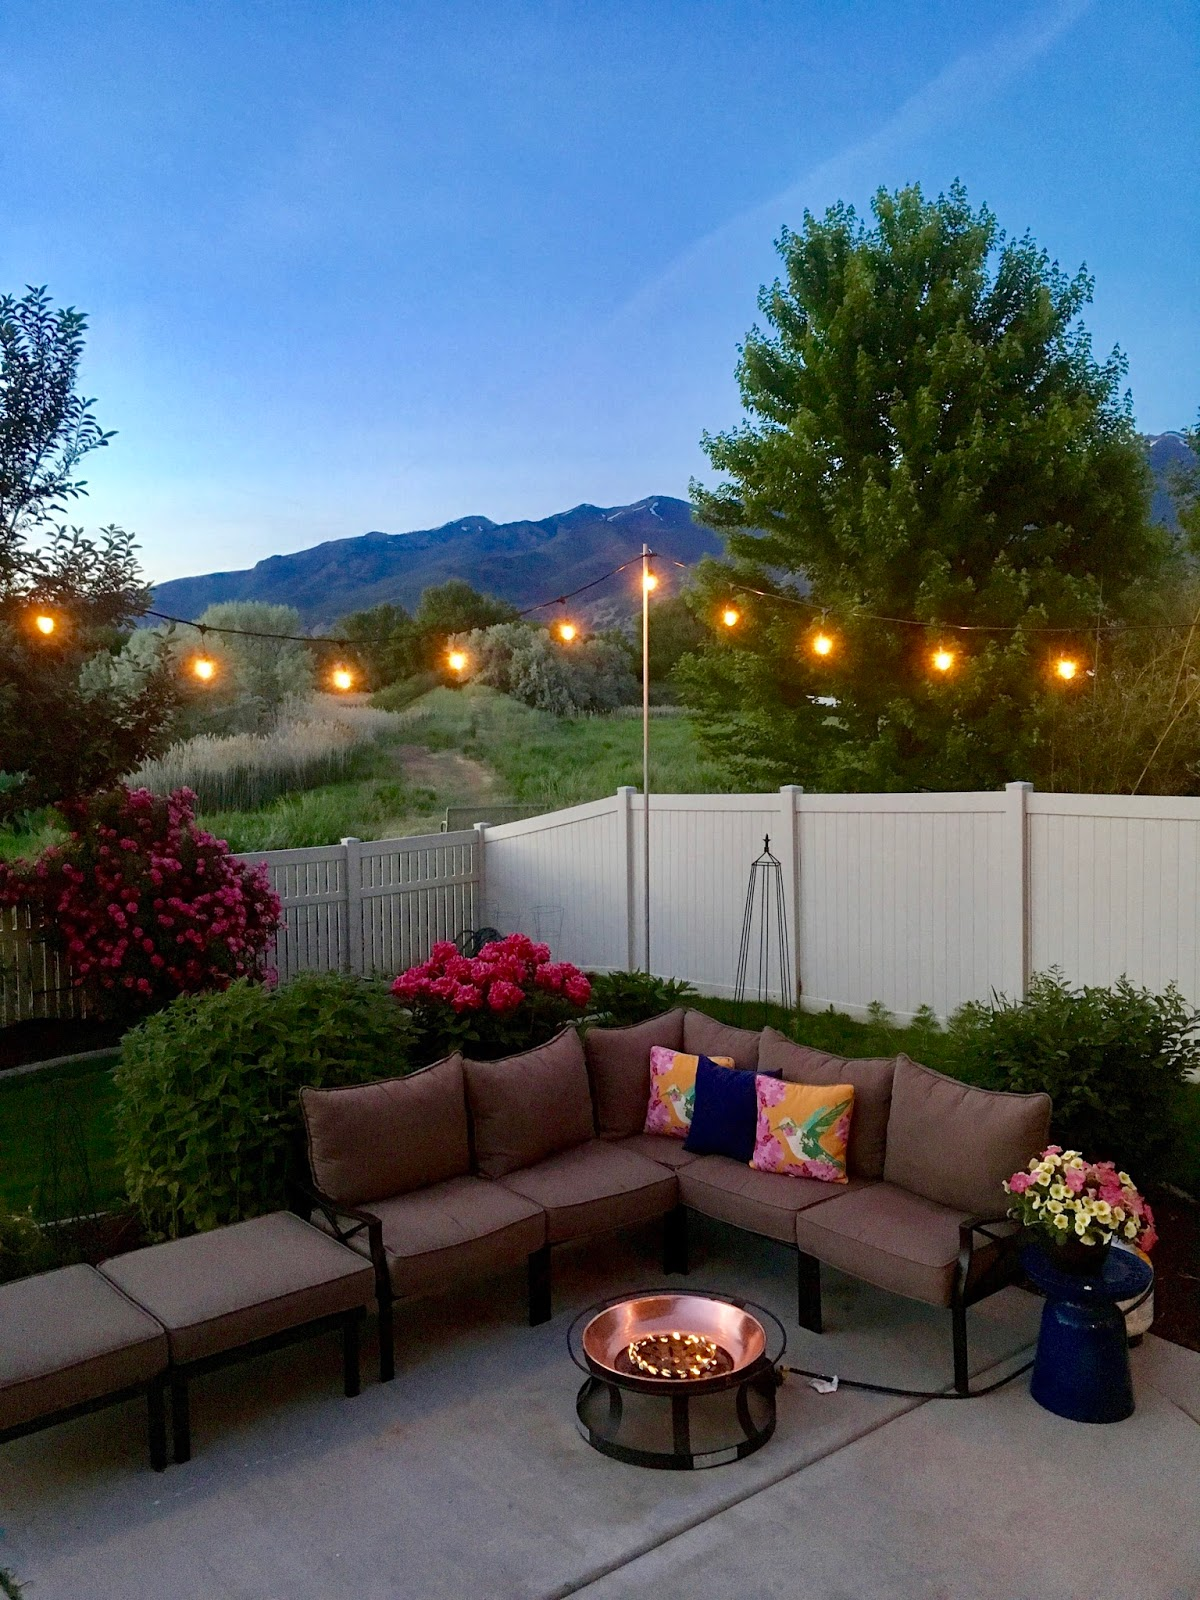 Restlessrisa Outdoor Yard Lights For Under - Out on the patio